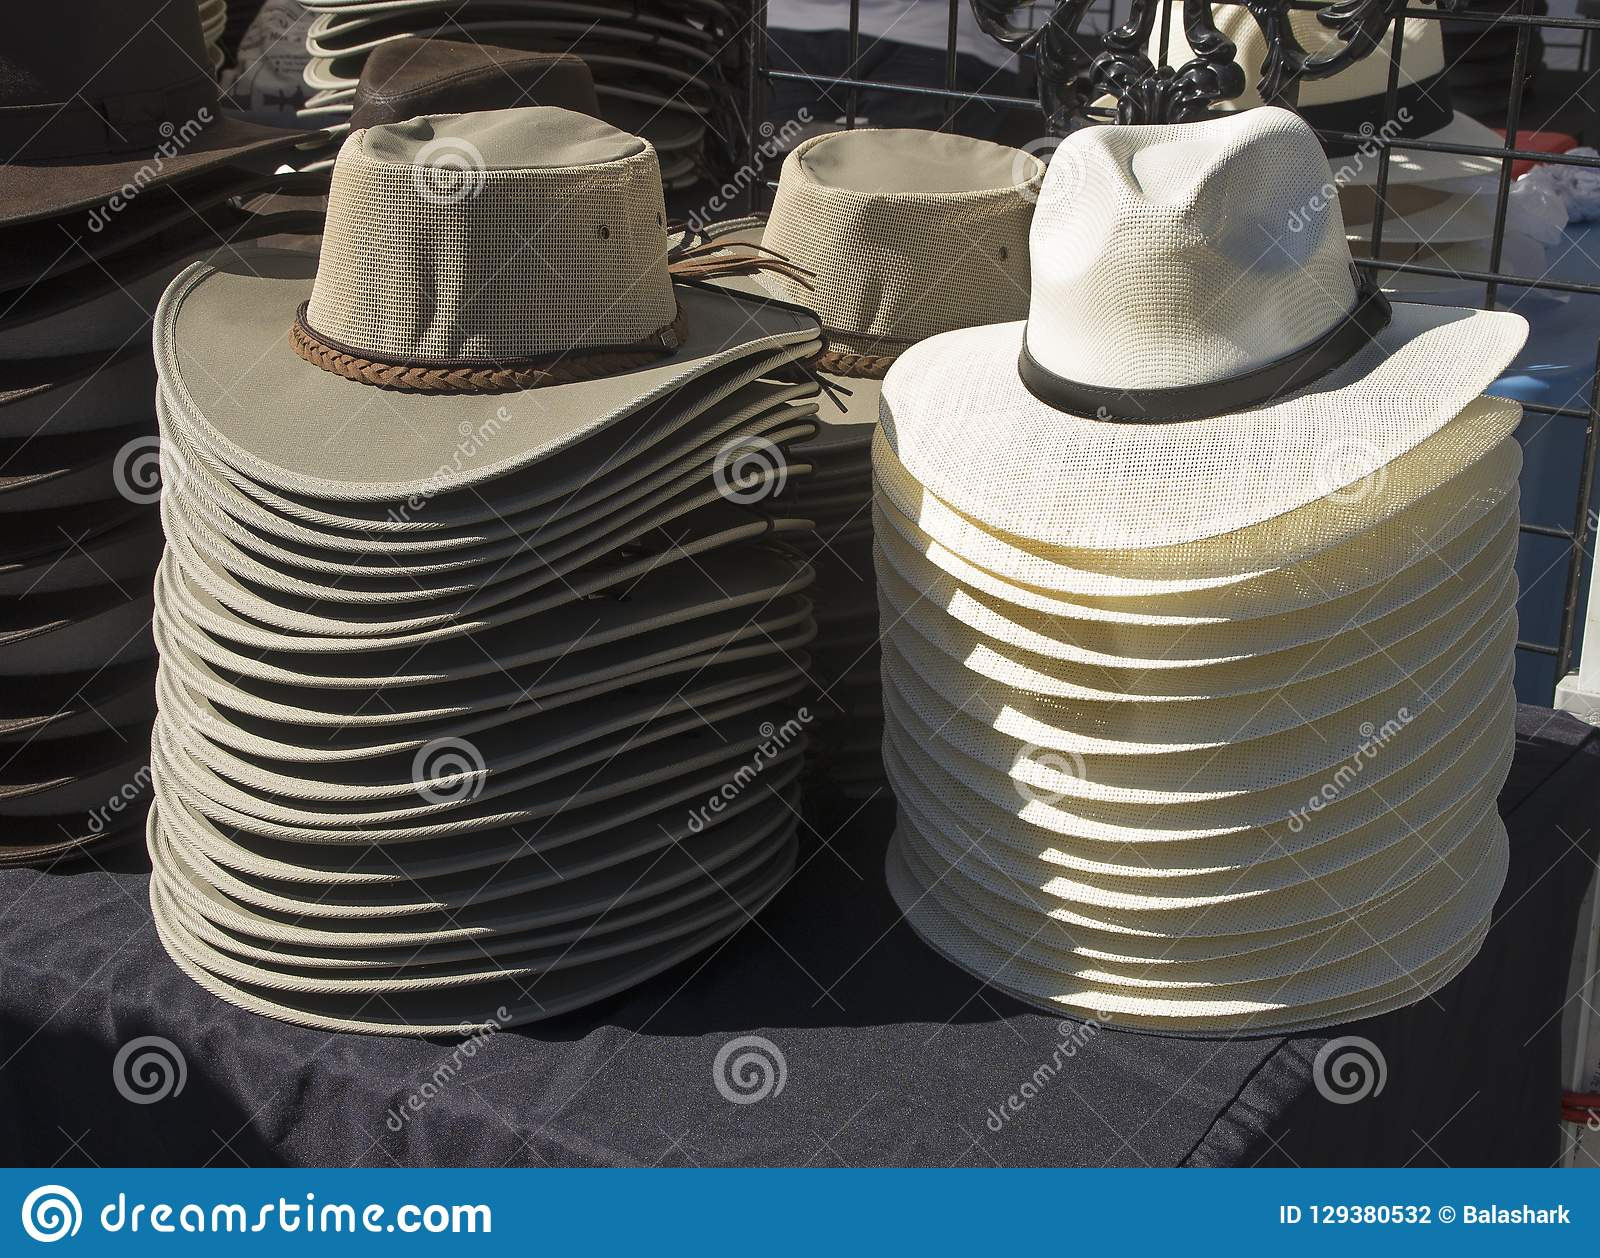 586ce46e333691 Hats are stacked high at a vendors at Mumfest in New Bern,North Carolina